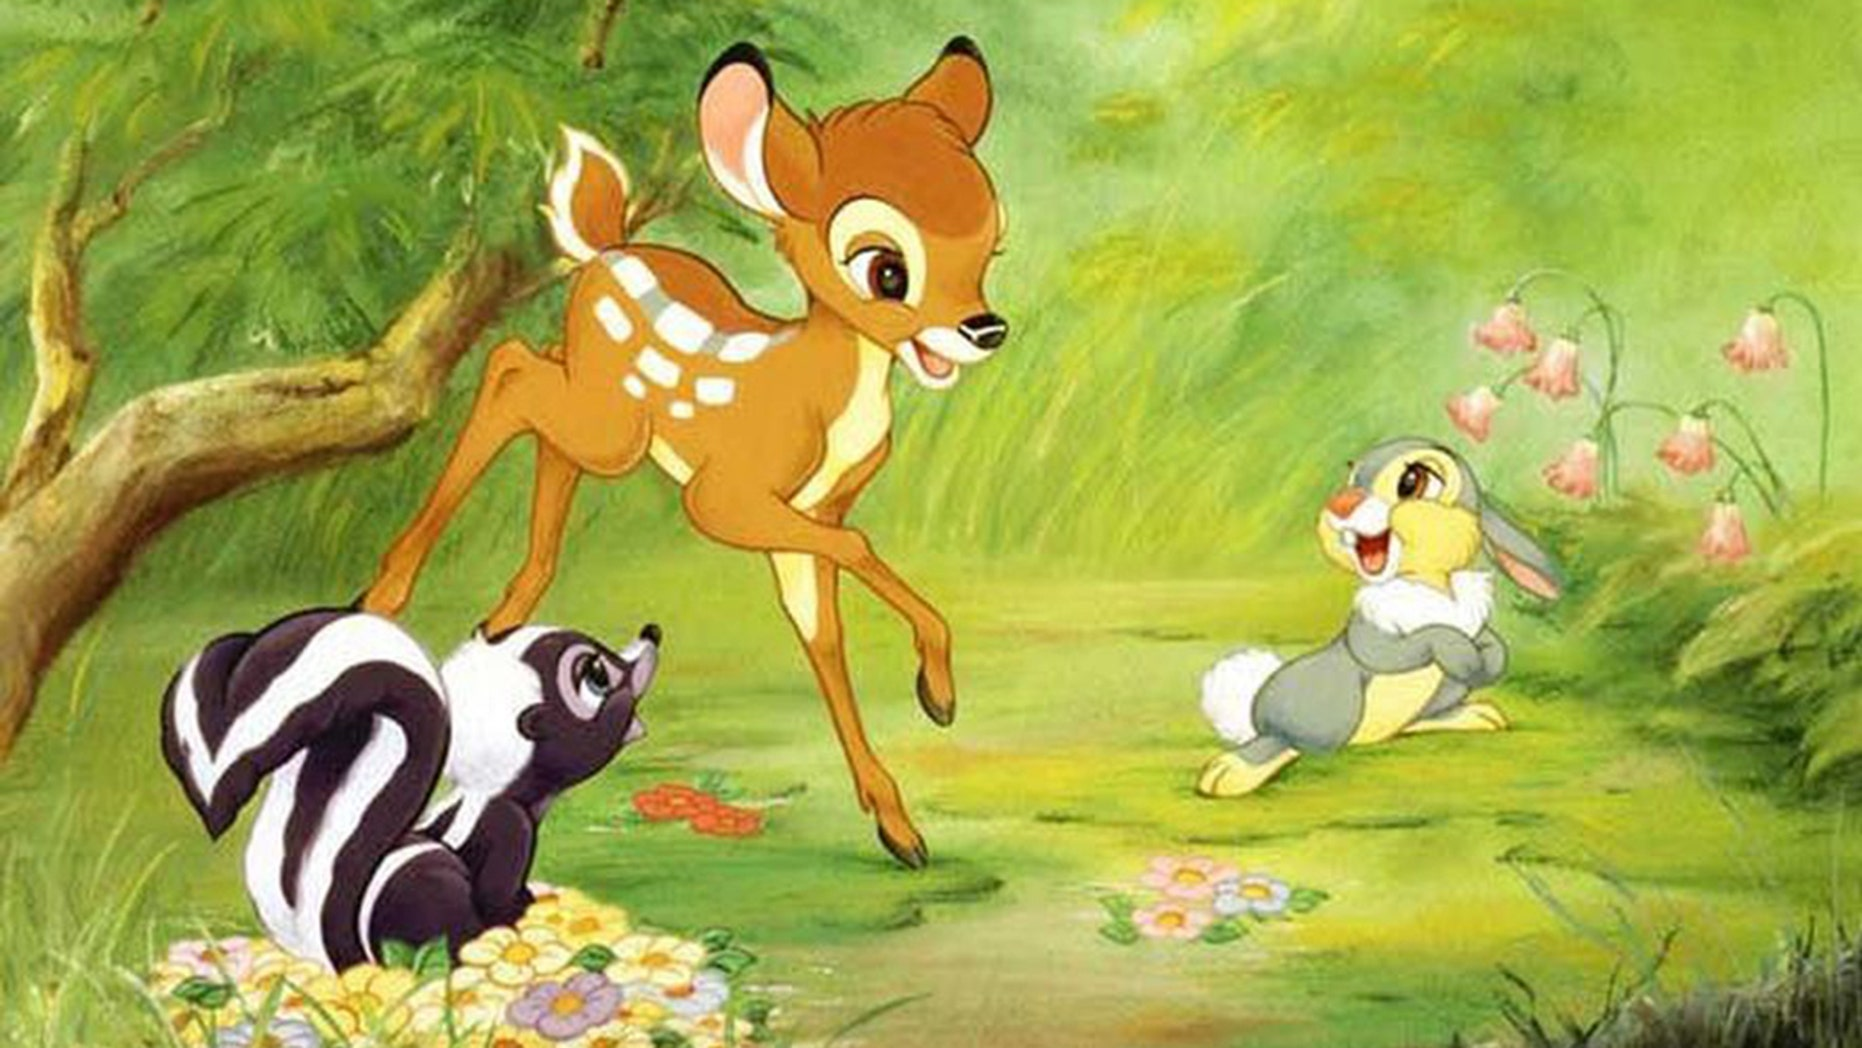 """A Missouri hunter involved in the illegal killing of """"several hundred deer"""" over the years must watch the Disney classic """"Bambi"""" once a month while he remains behind bars."""